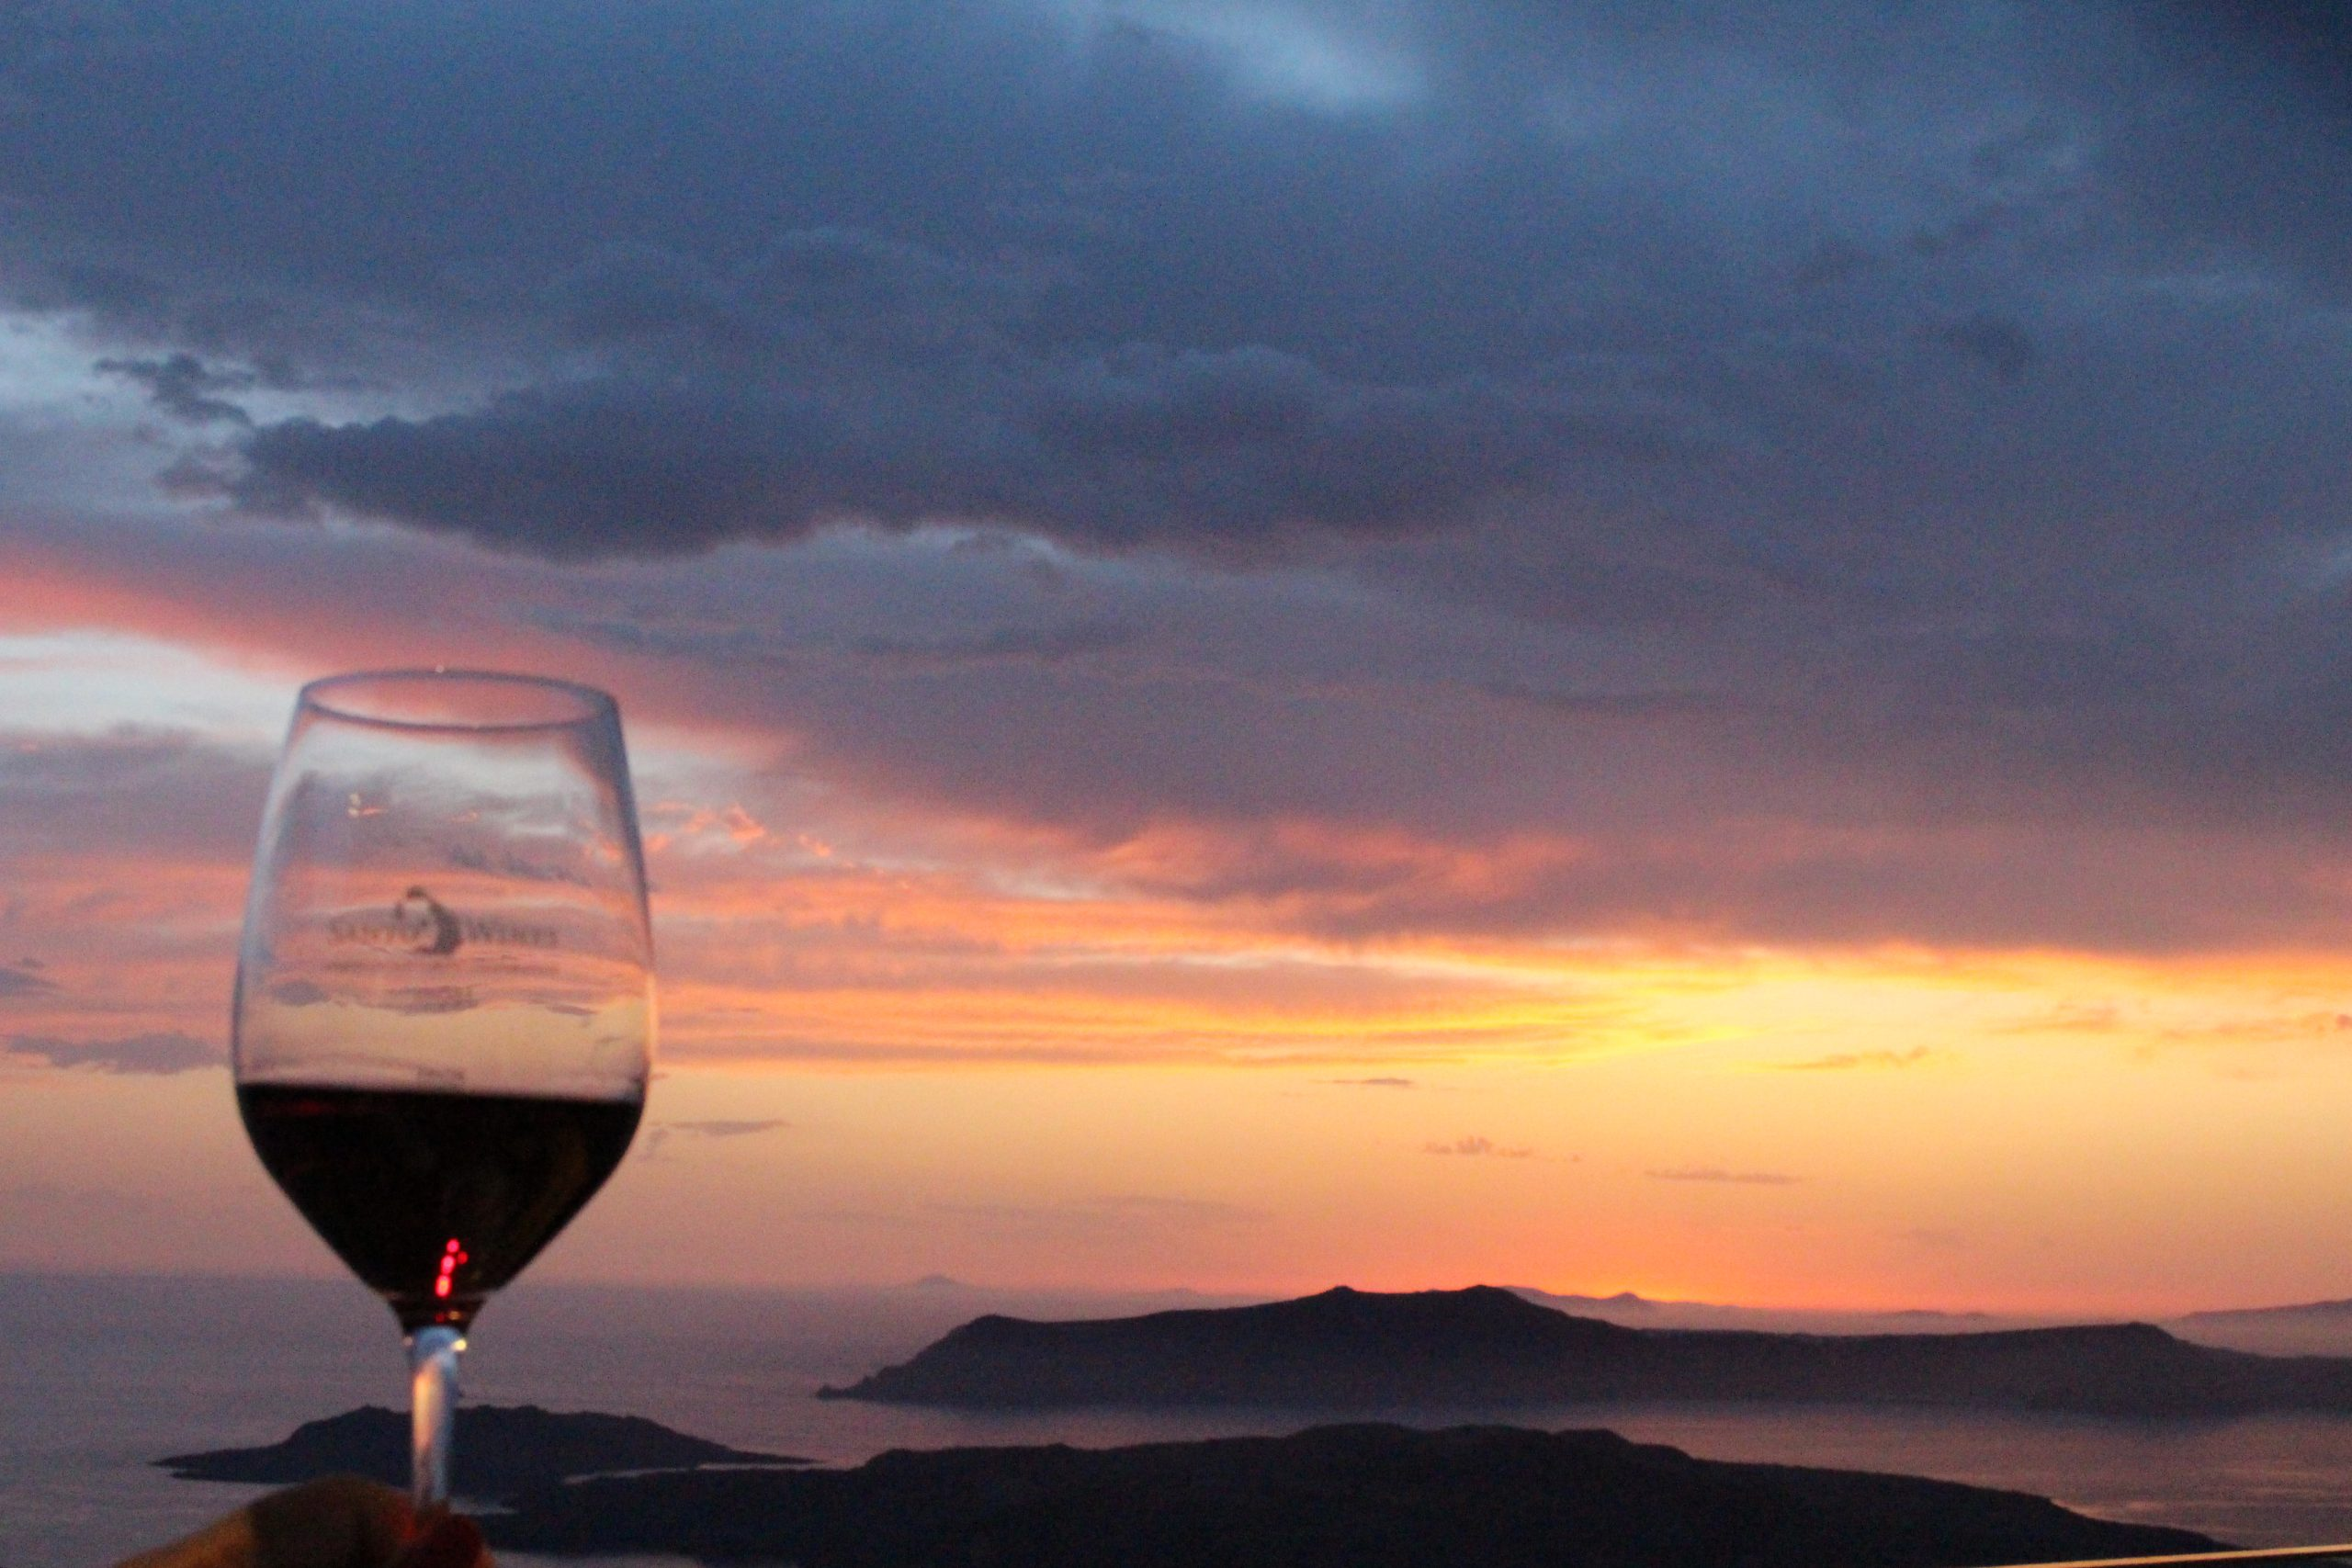 santo_wines_sunset